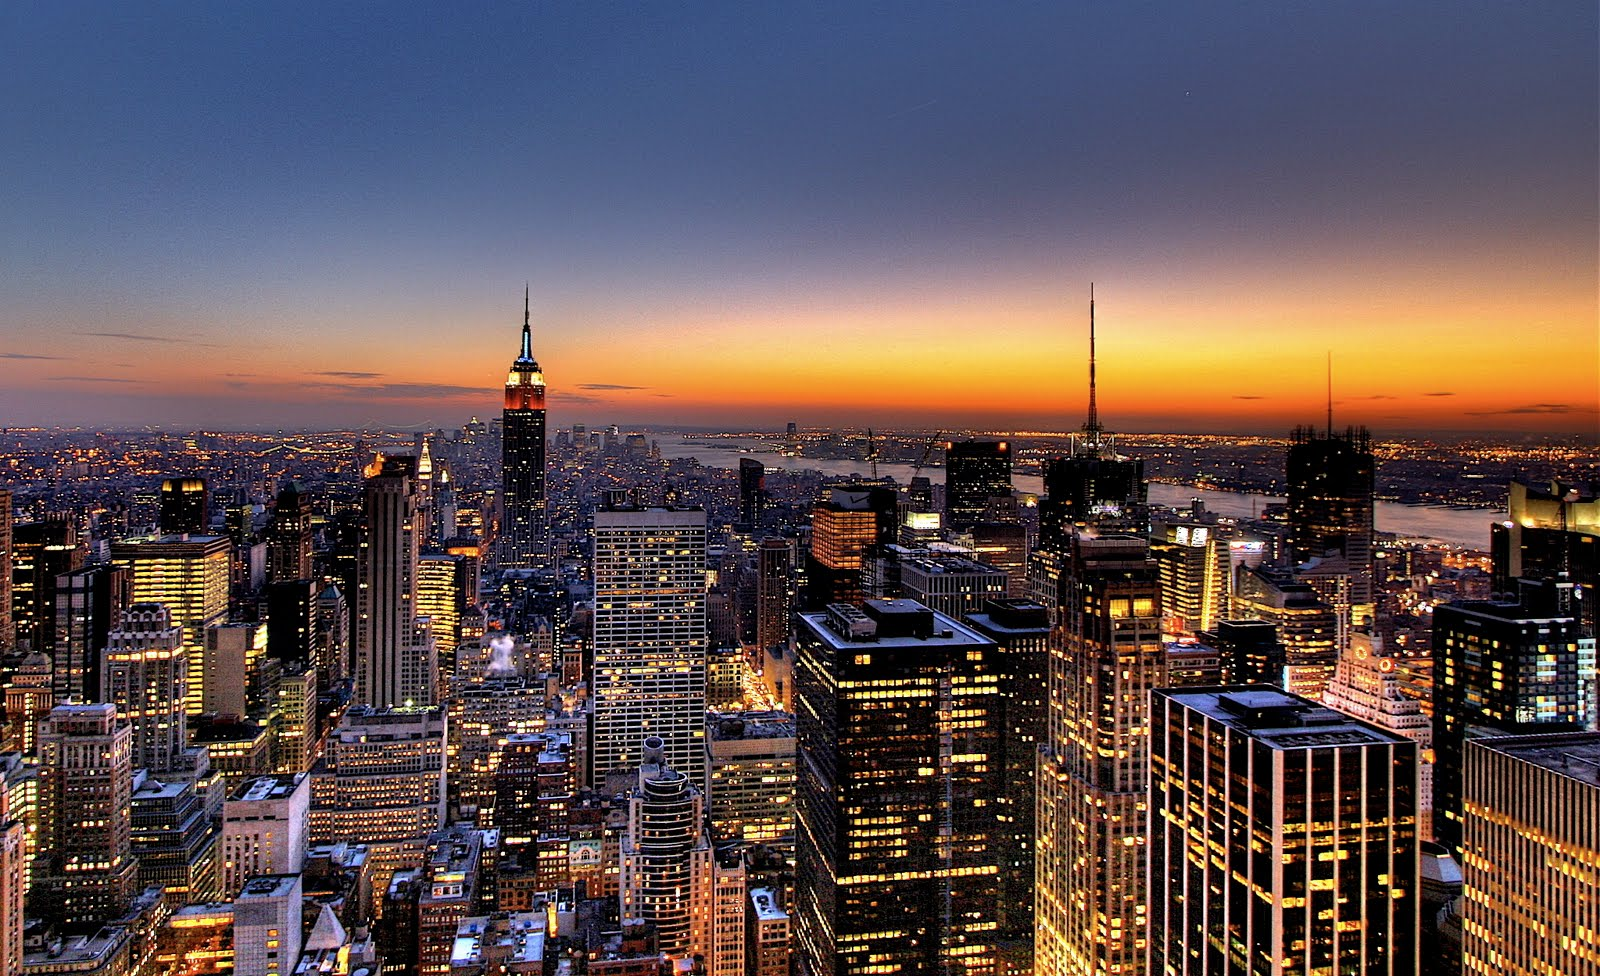 New York City Skyline - Sunset Wallpaper | Hd Desktop ...